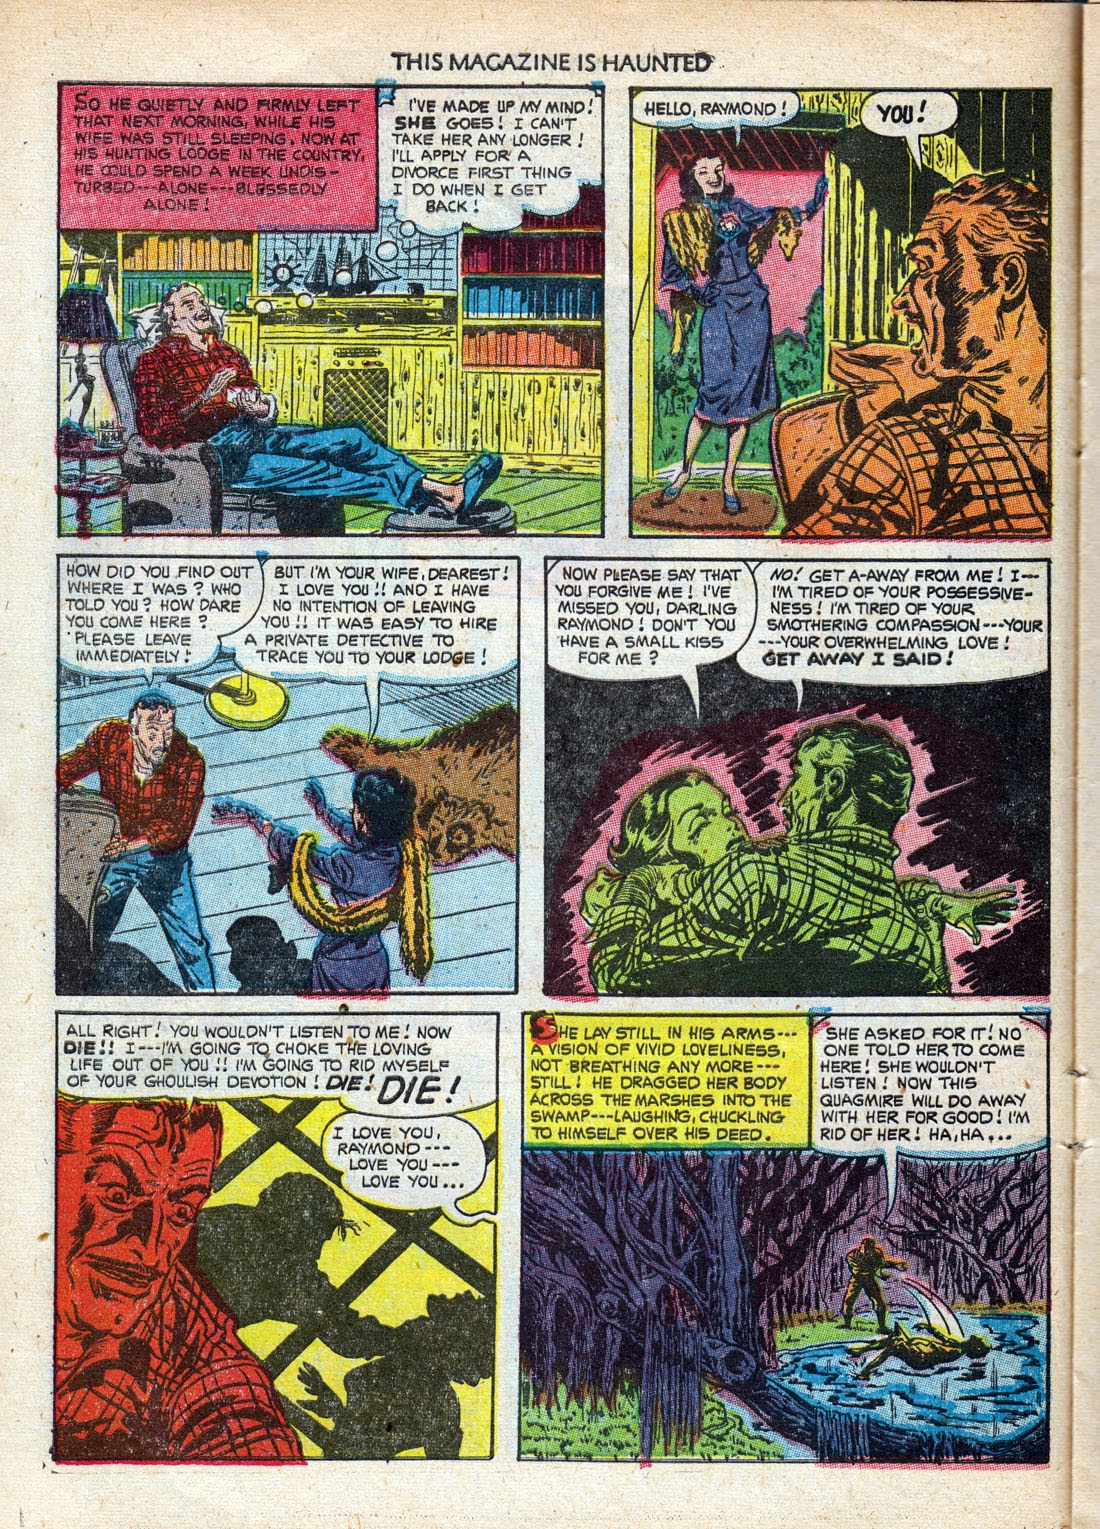 Read online This Magazine Is Haunted comic -  Issue #11 - 10